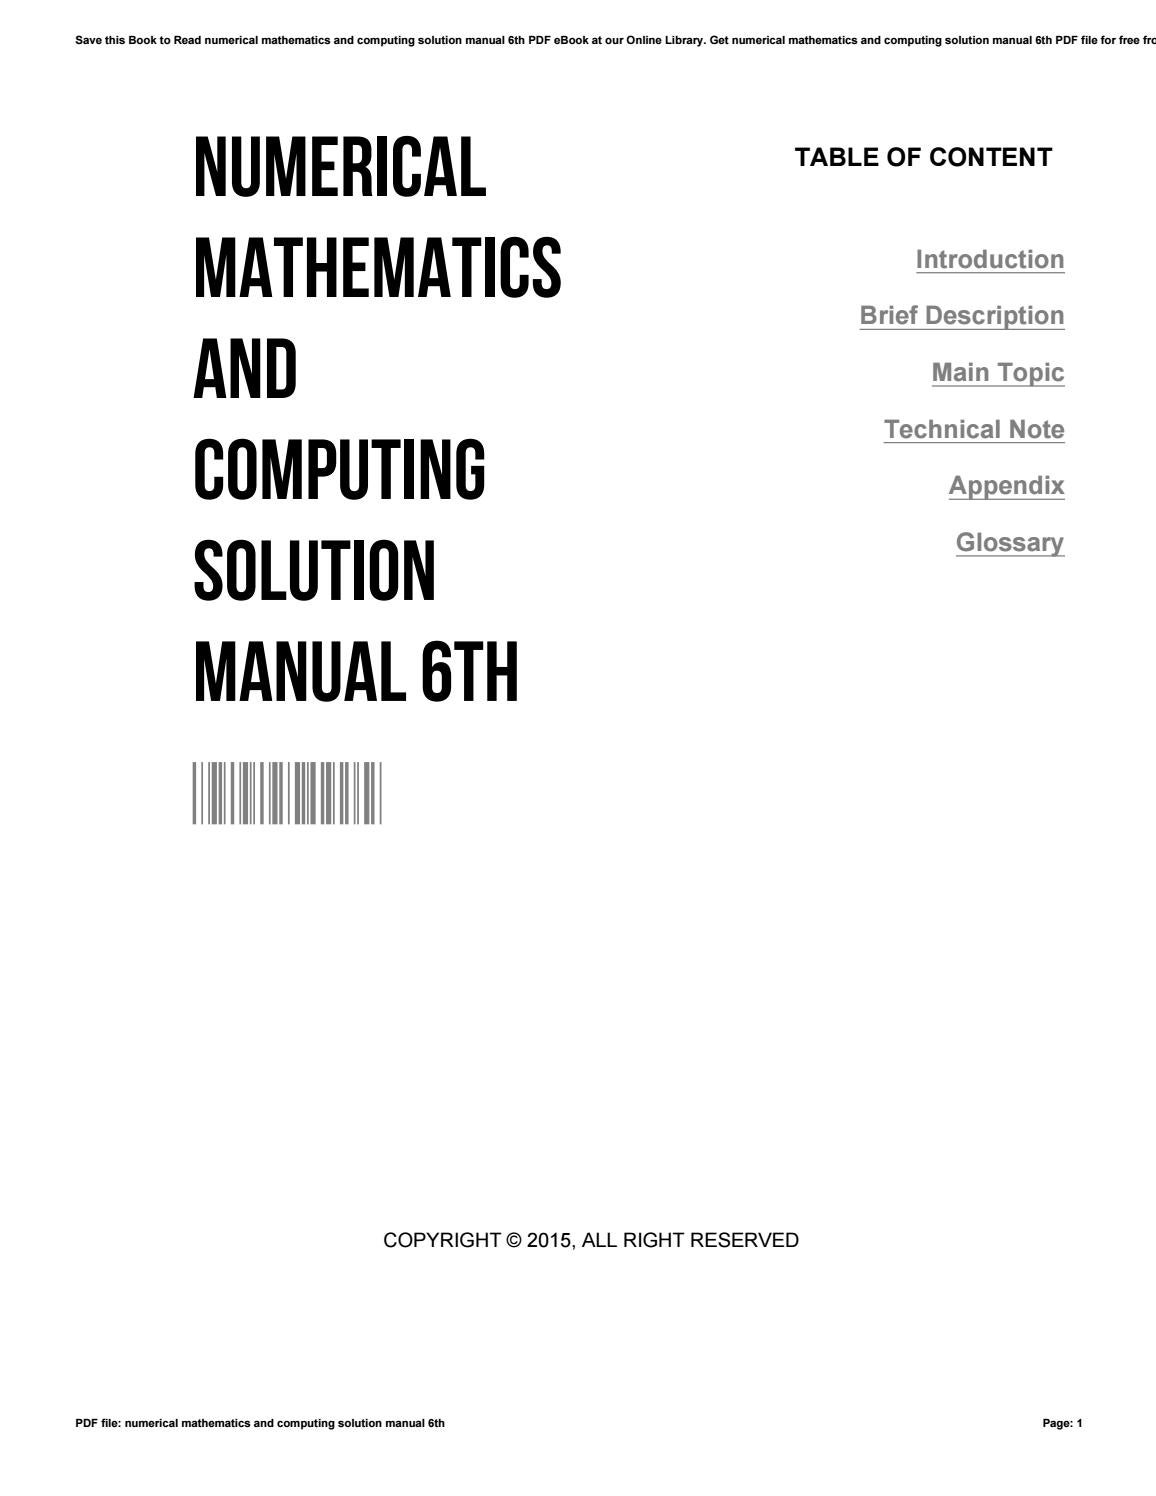 Numerical mathematics and computing solution manual 6th by